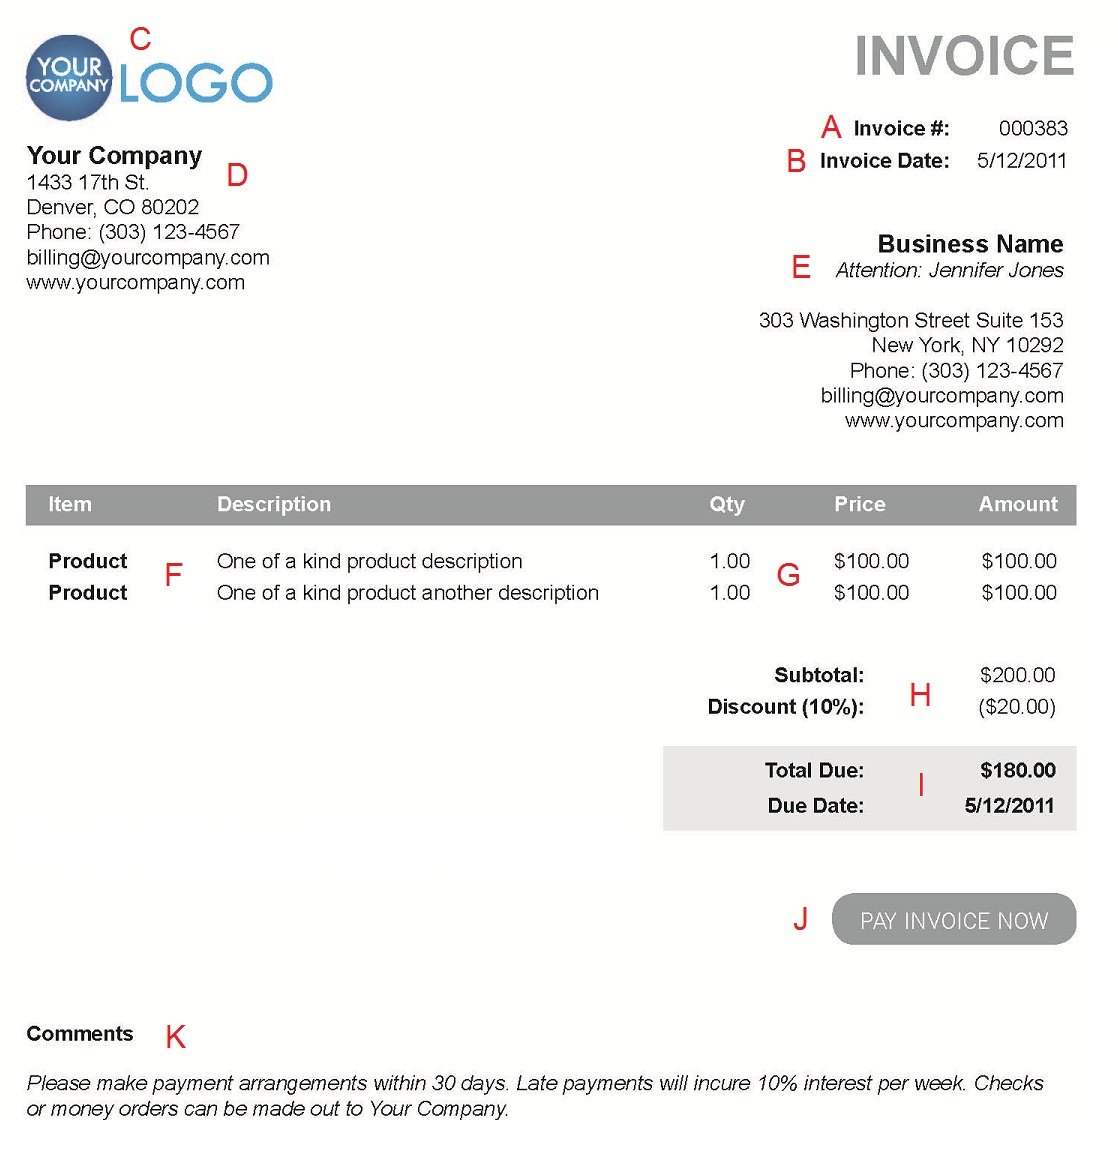 Theologygeekblogus  Fascinating The  Different Sections Of An Electronic Payment Invoice With Marvelous A  With Charming Receipt For Purchase Also Receipt Accounting Definition In Addition Non Profit Receipt Template And Negotiable Warehouse Receipt As Well As Saks Return Policy No Receipt Additionally Party City Return Policy No Receipt From Paysimplecom With Theologygeekblogus  Marvelous The  Different Sections Of An Electronic Payment Invoice With Charming A  And Fascinating Receipt For Purchase Also Receipt Accounting Definition In Addition Non Profit Receipt Template From Paysimplecom